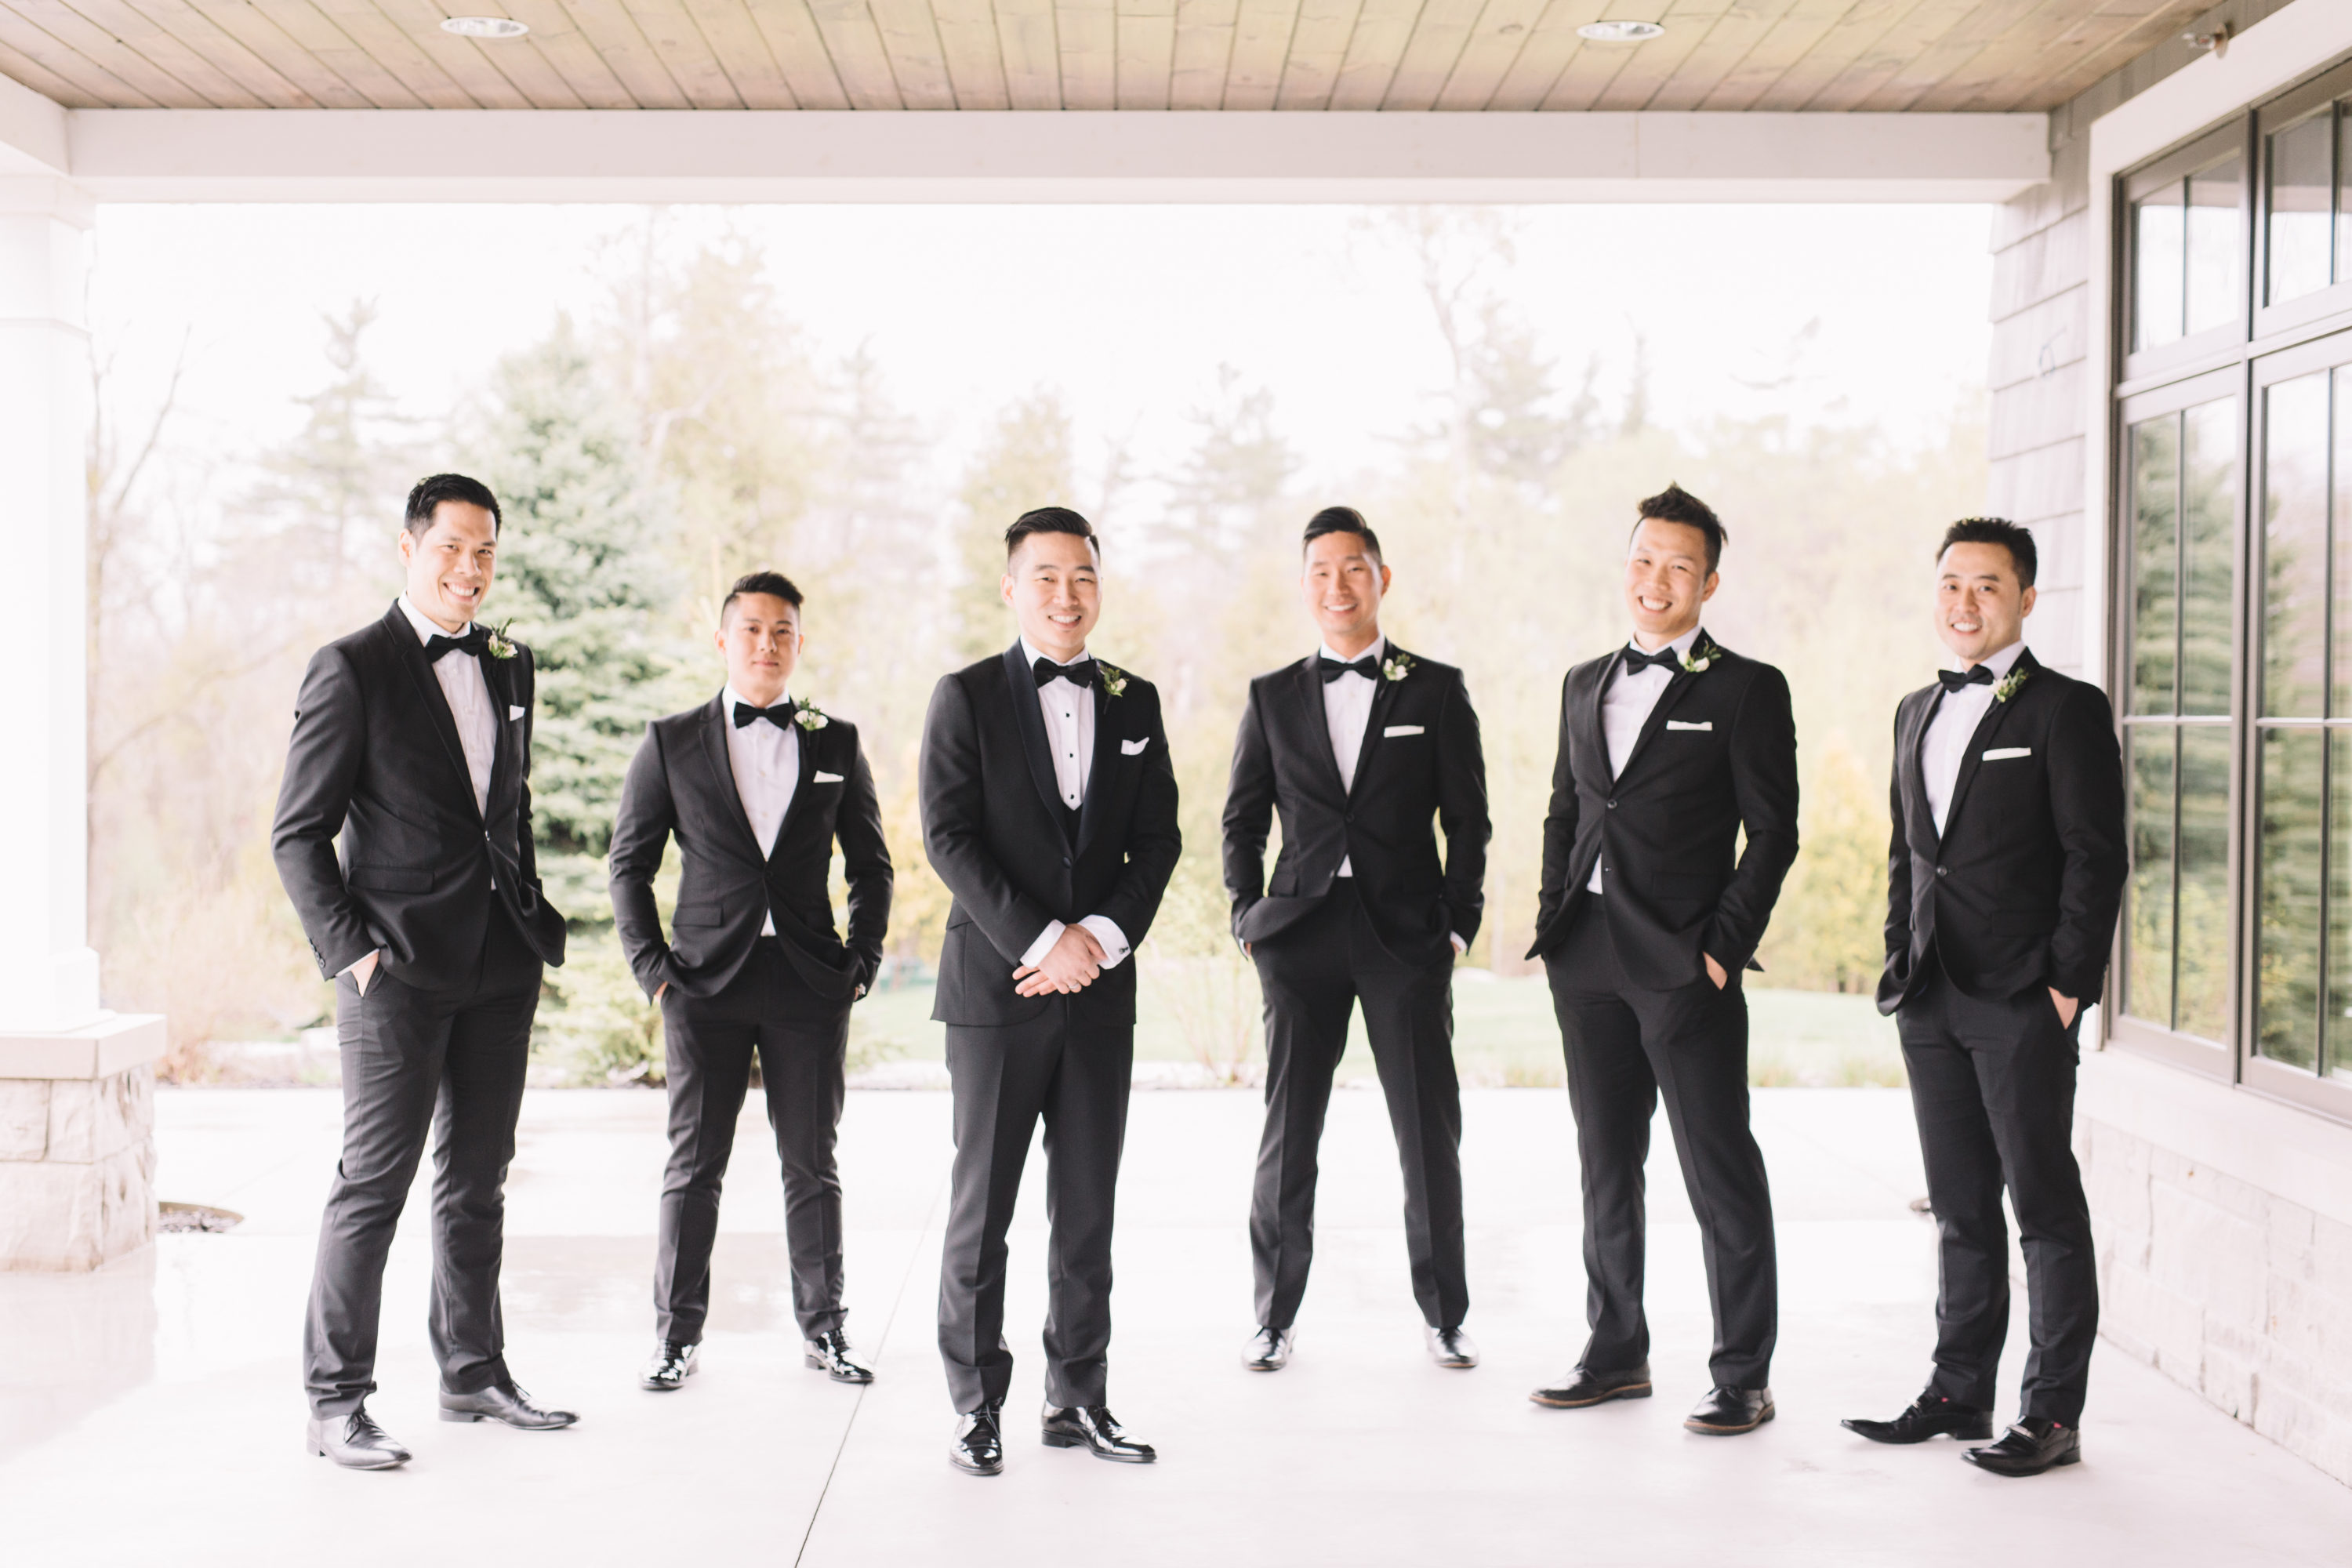 Groom with Groomsmen at Whistle Bear